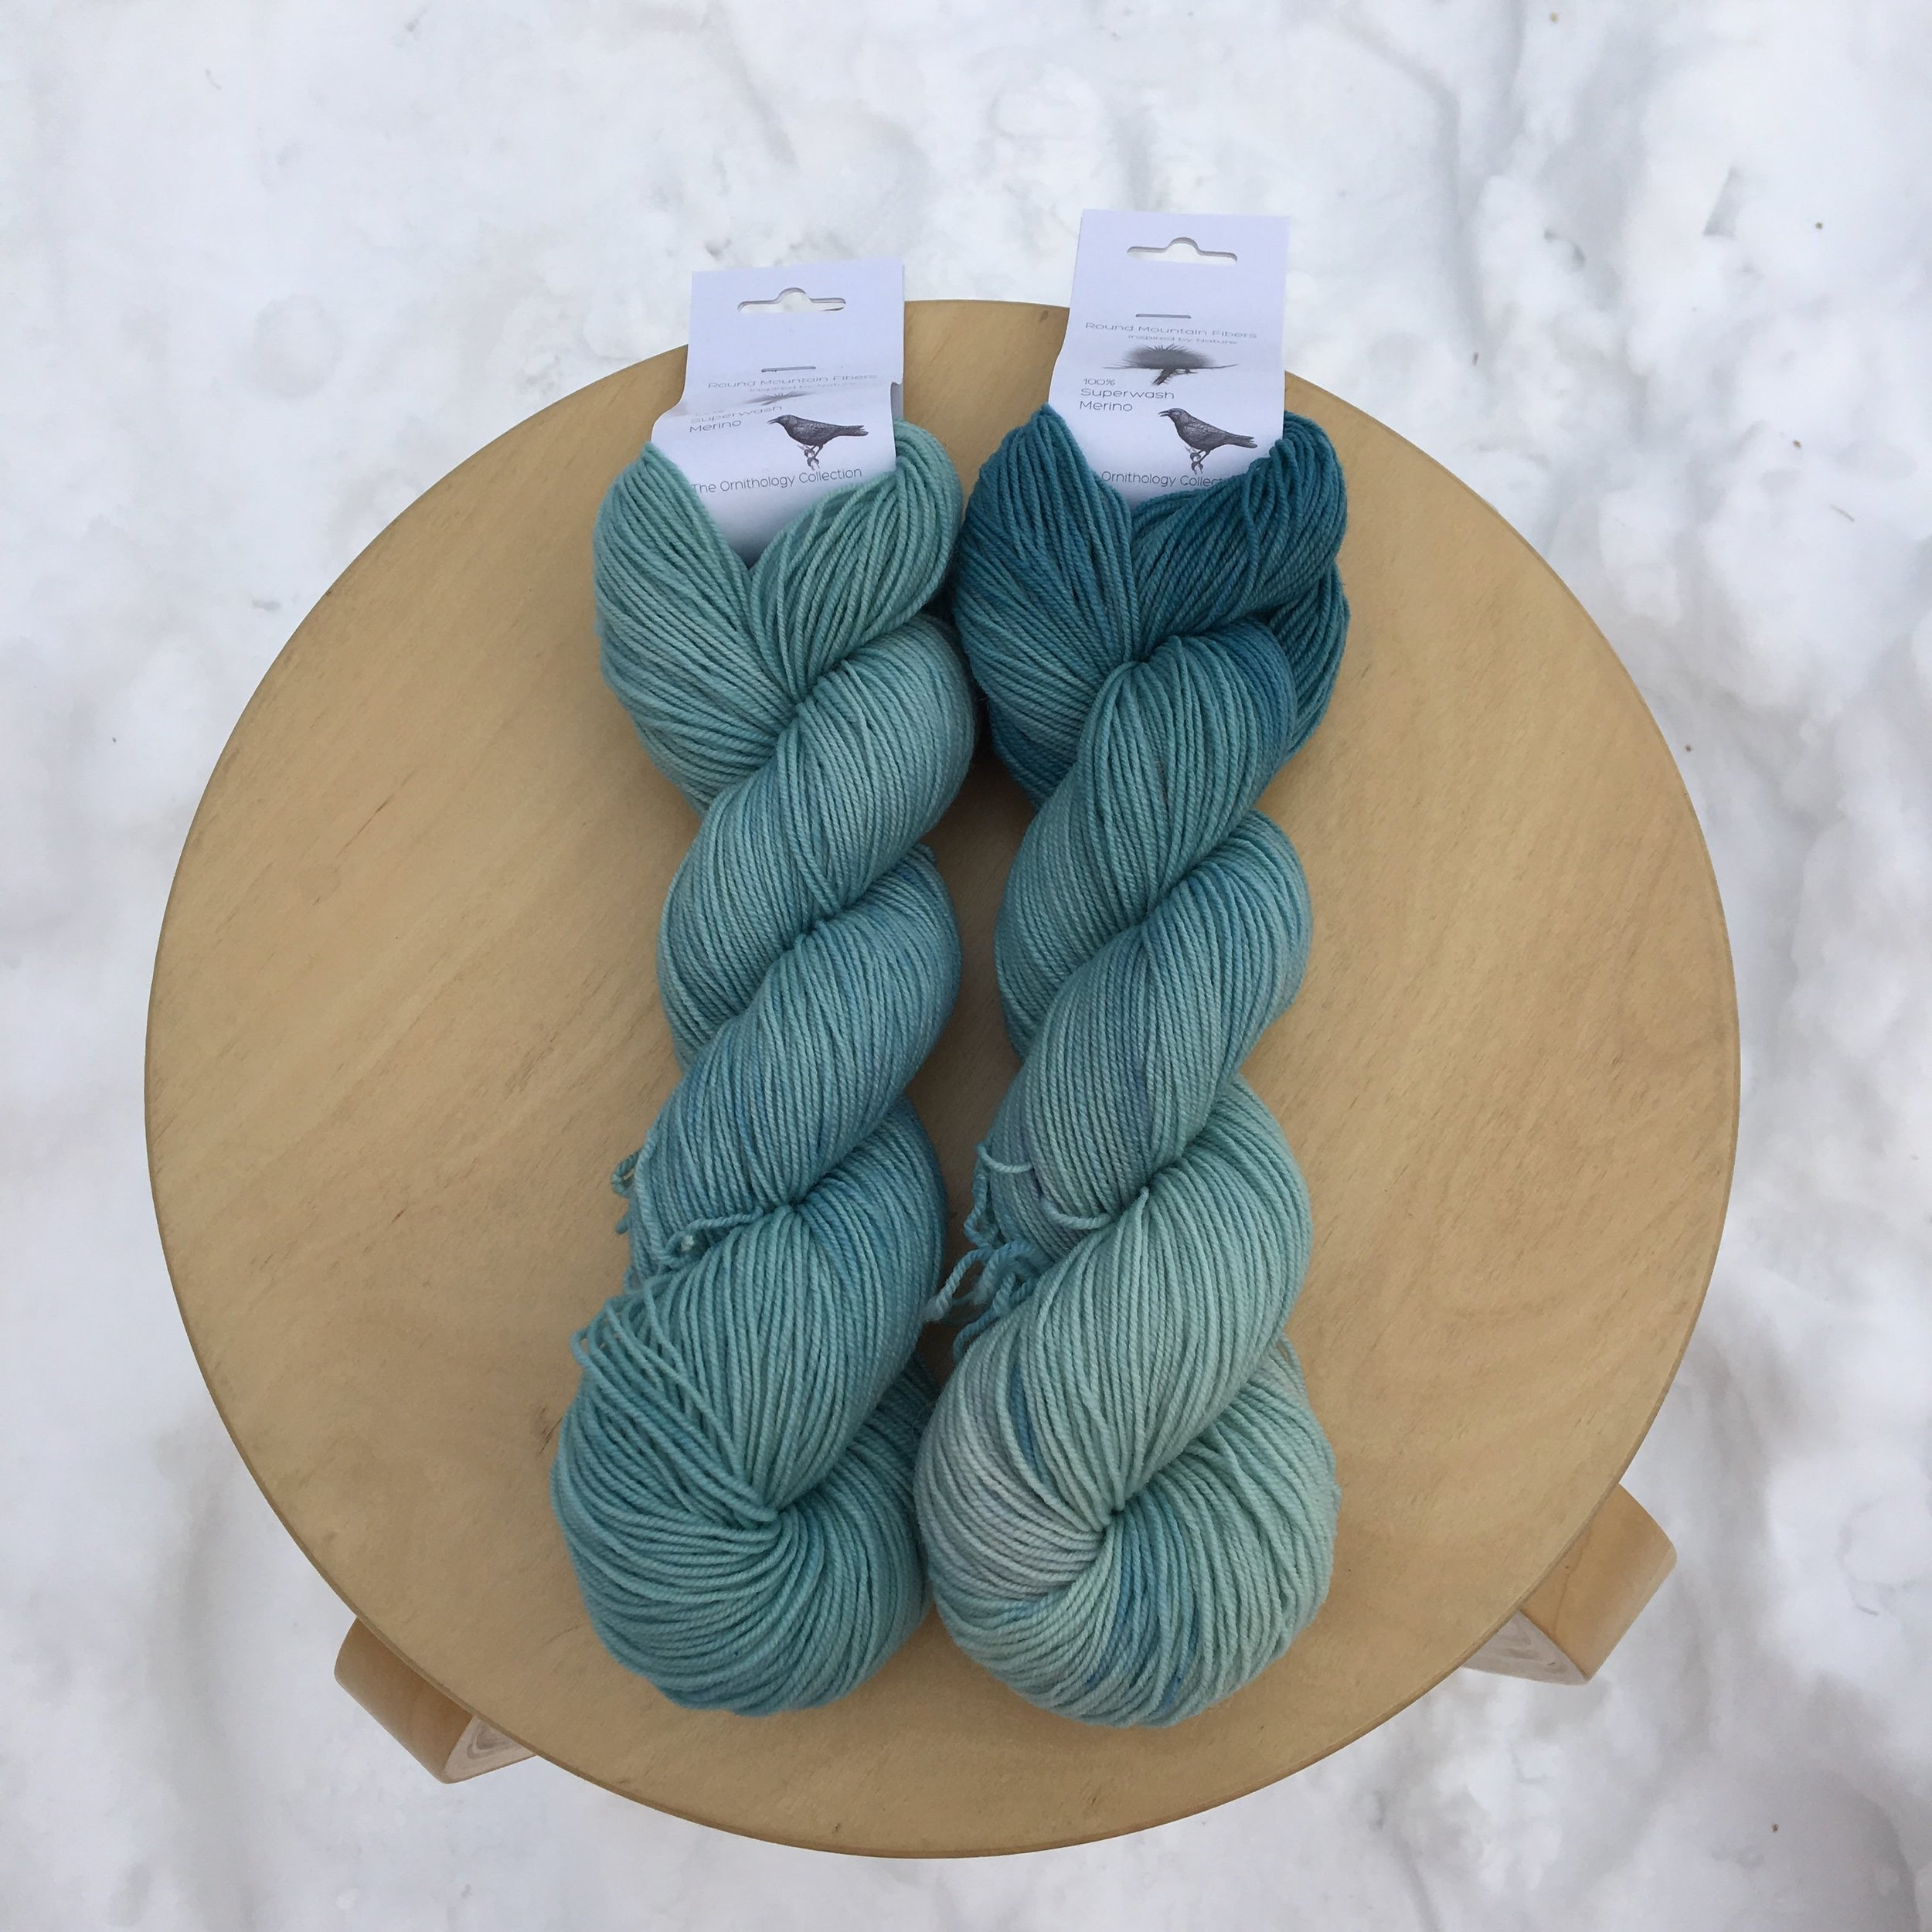 Win this yarn for you and a friend! See giveaway details below!